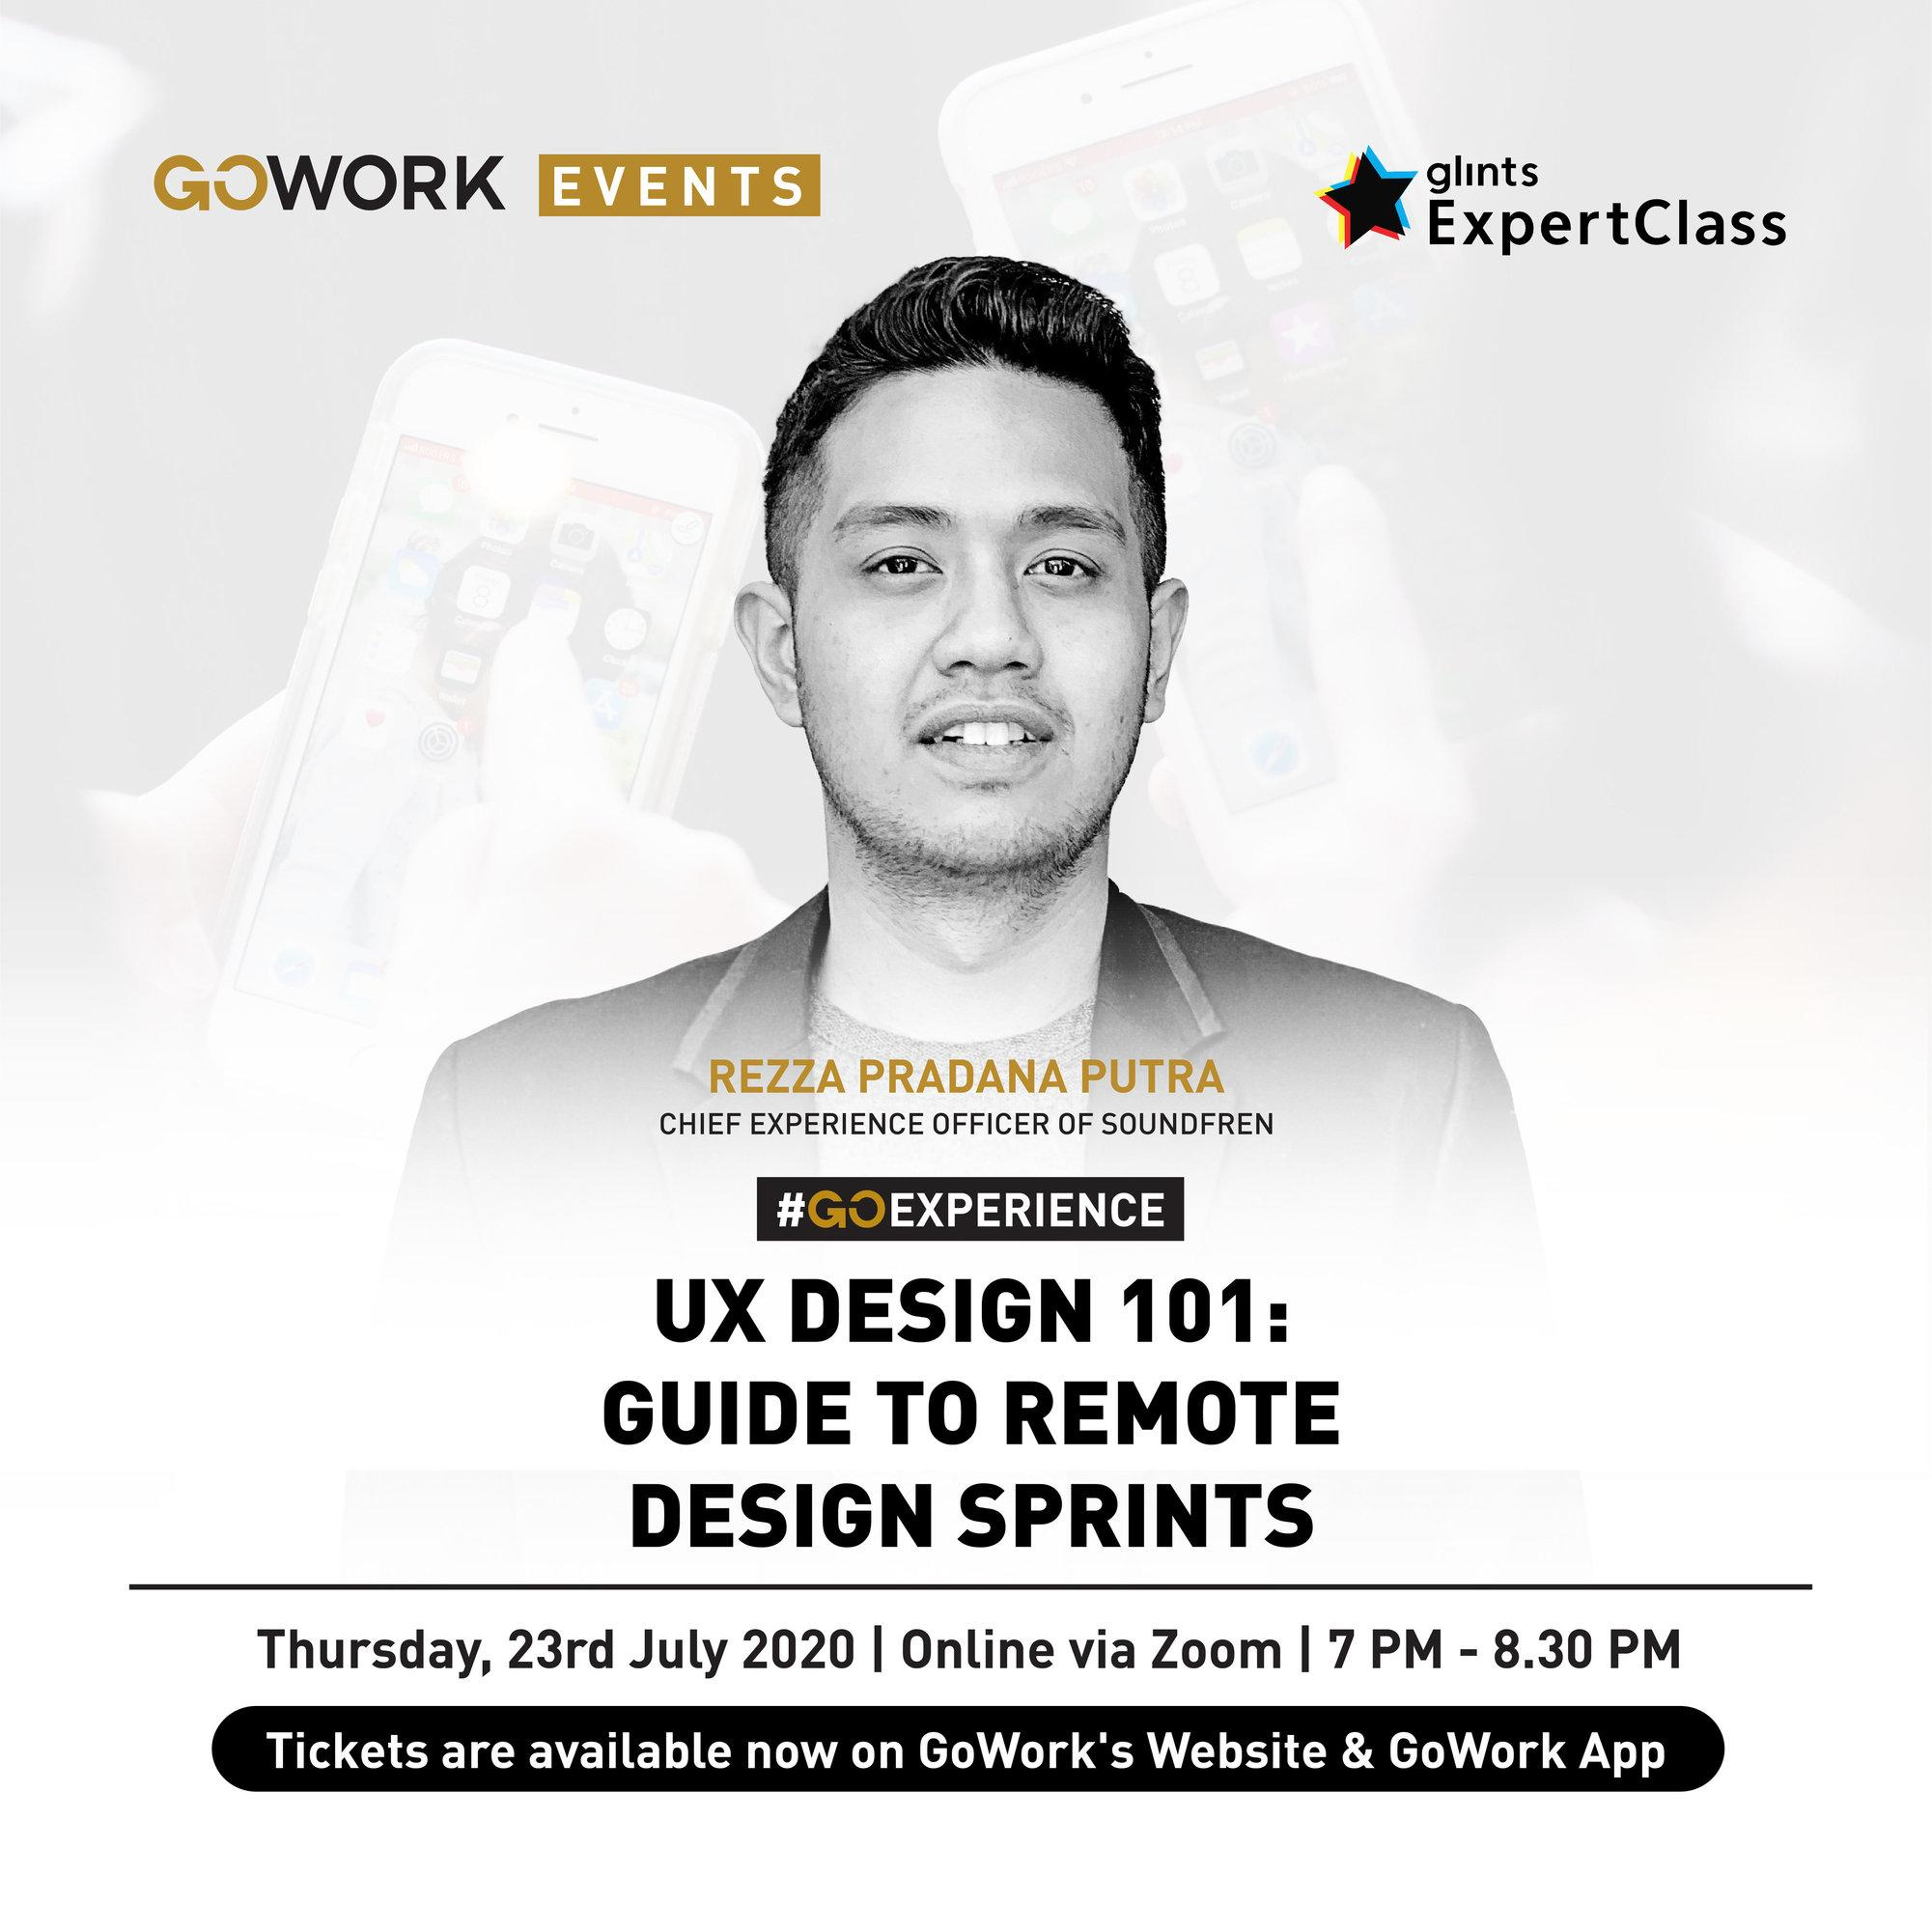 UX Design 101: Guide to Remote Design Sprints